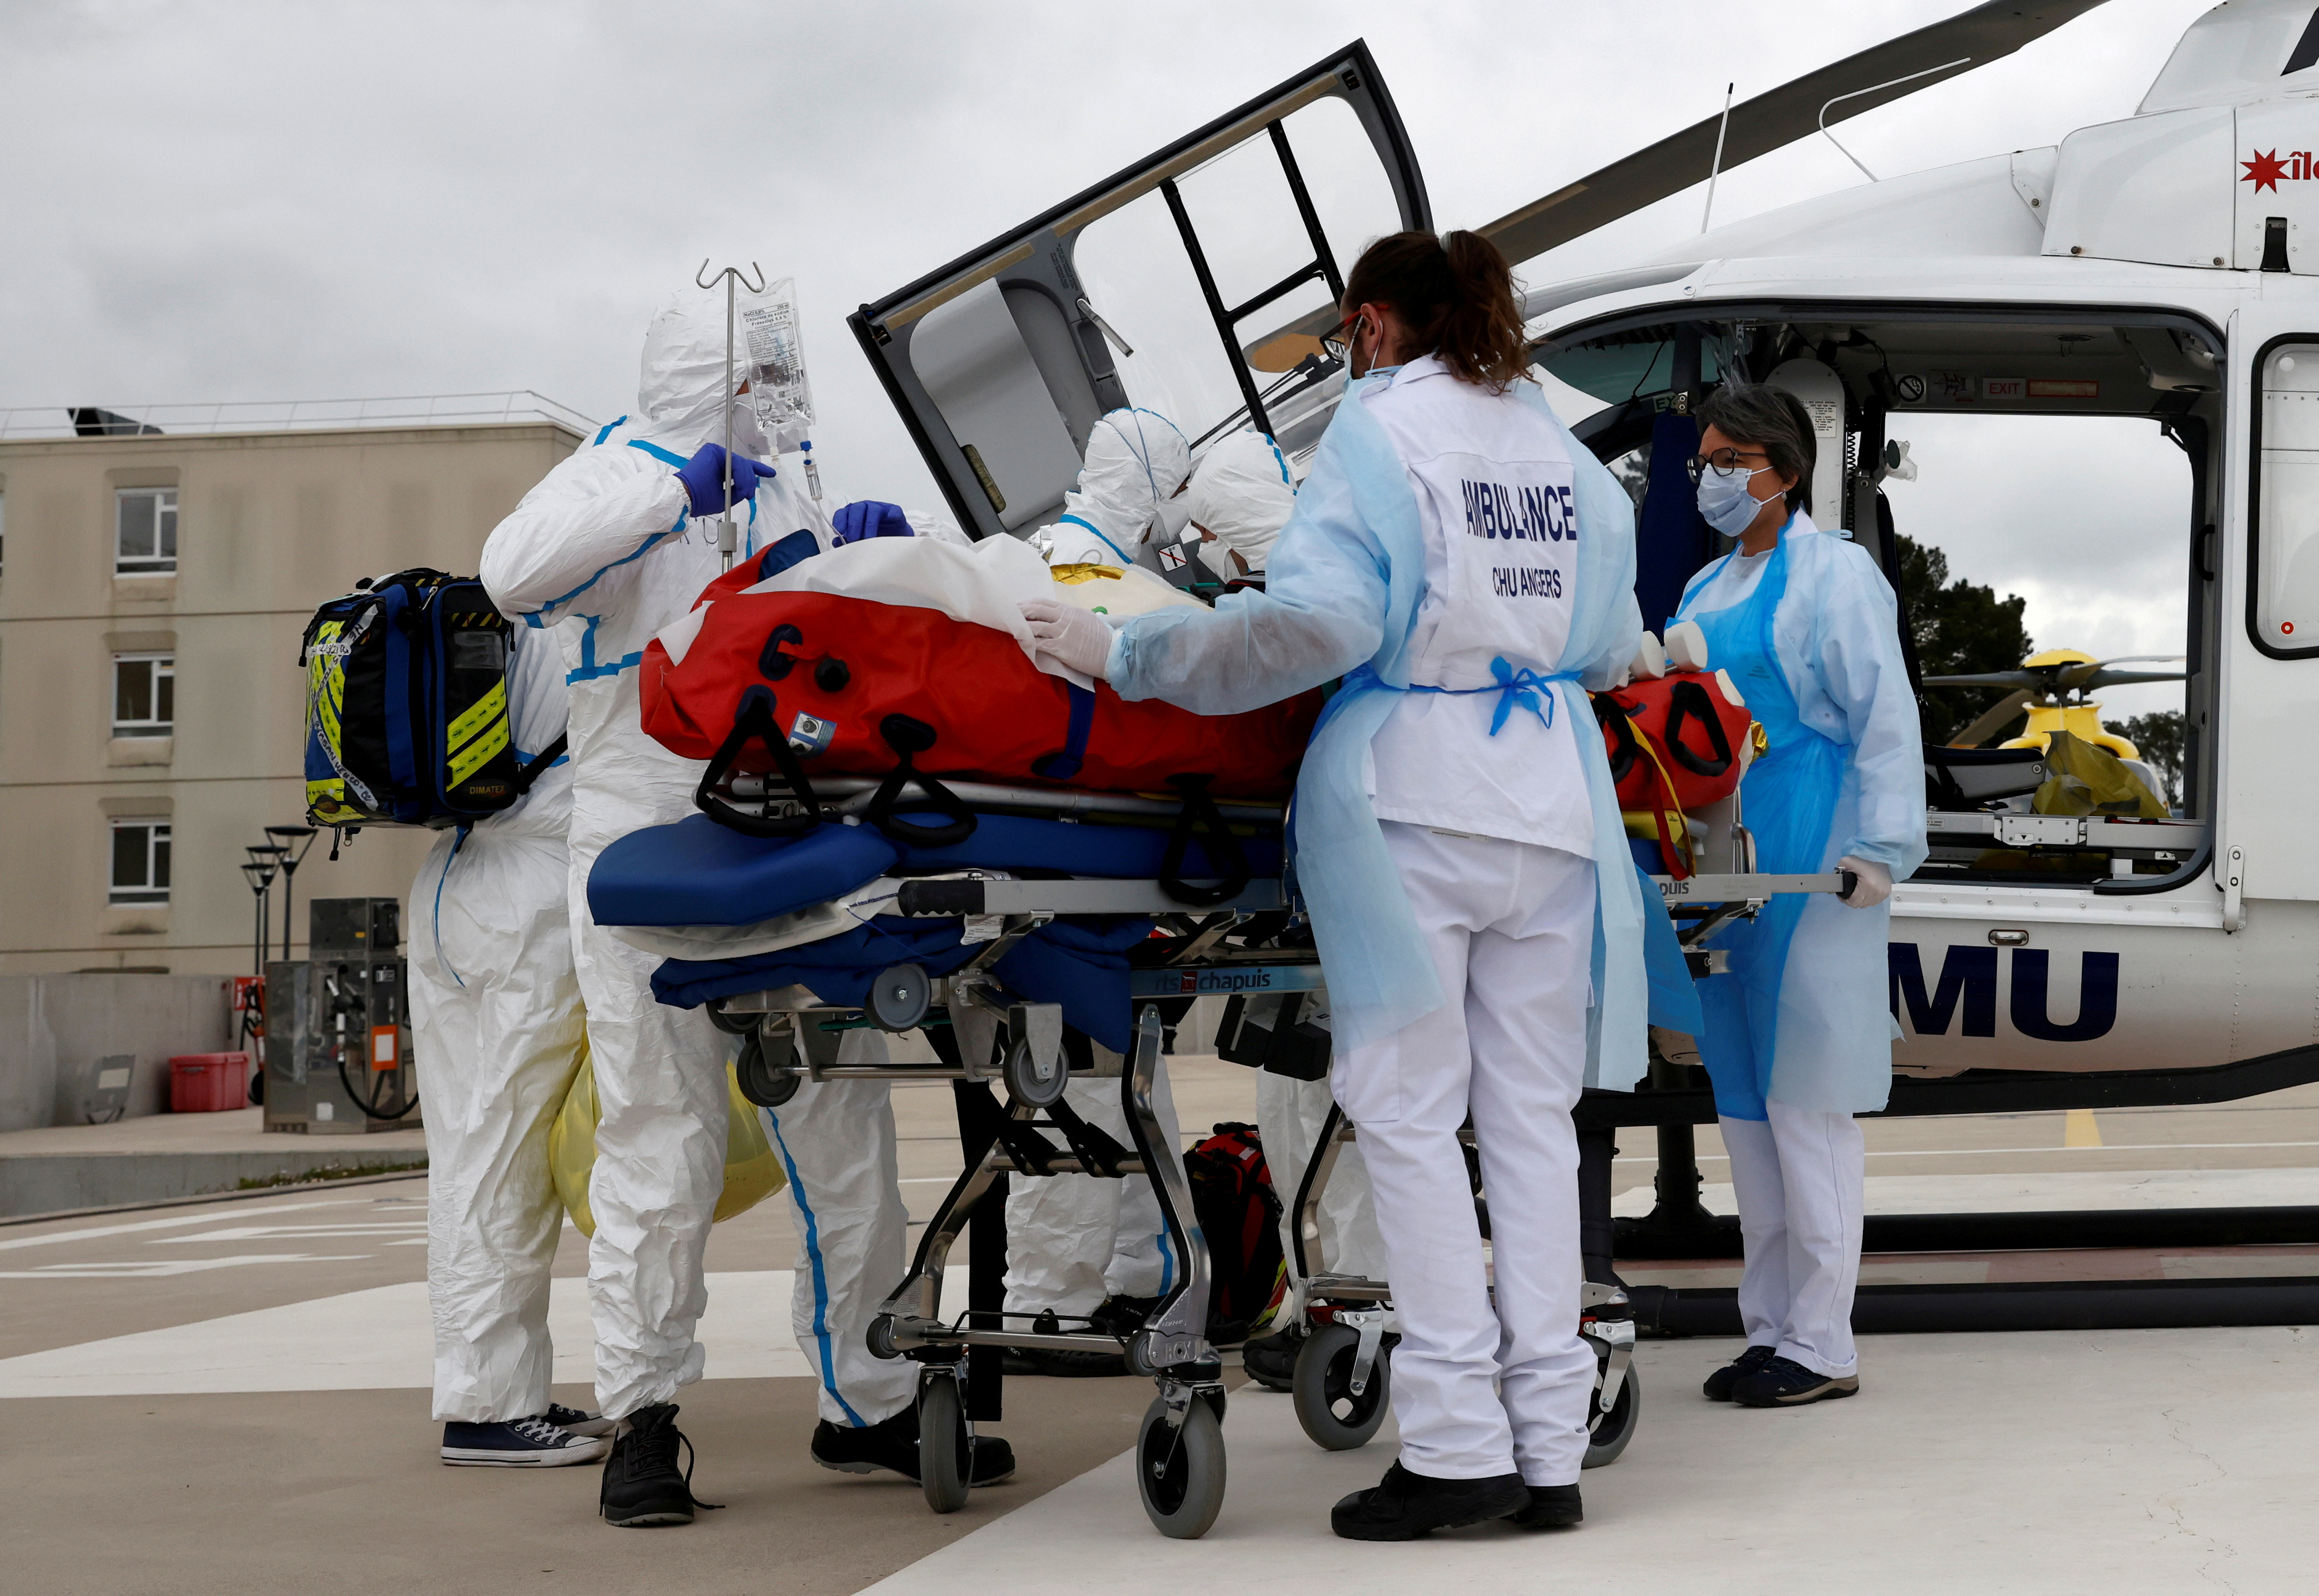 A medical crew from Angers hospital prepares to take away a COVID-19 patient on a stretcher after his transfer by helicopter from the Ile de France region to Angers hospital, France, March 15, 2021. REUTERS/Stephane Mahe/File Photo